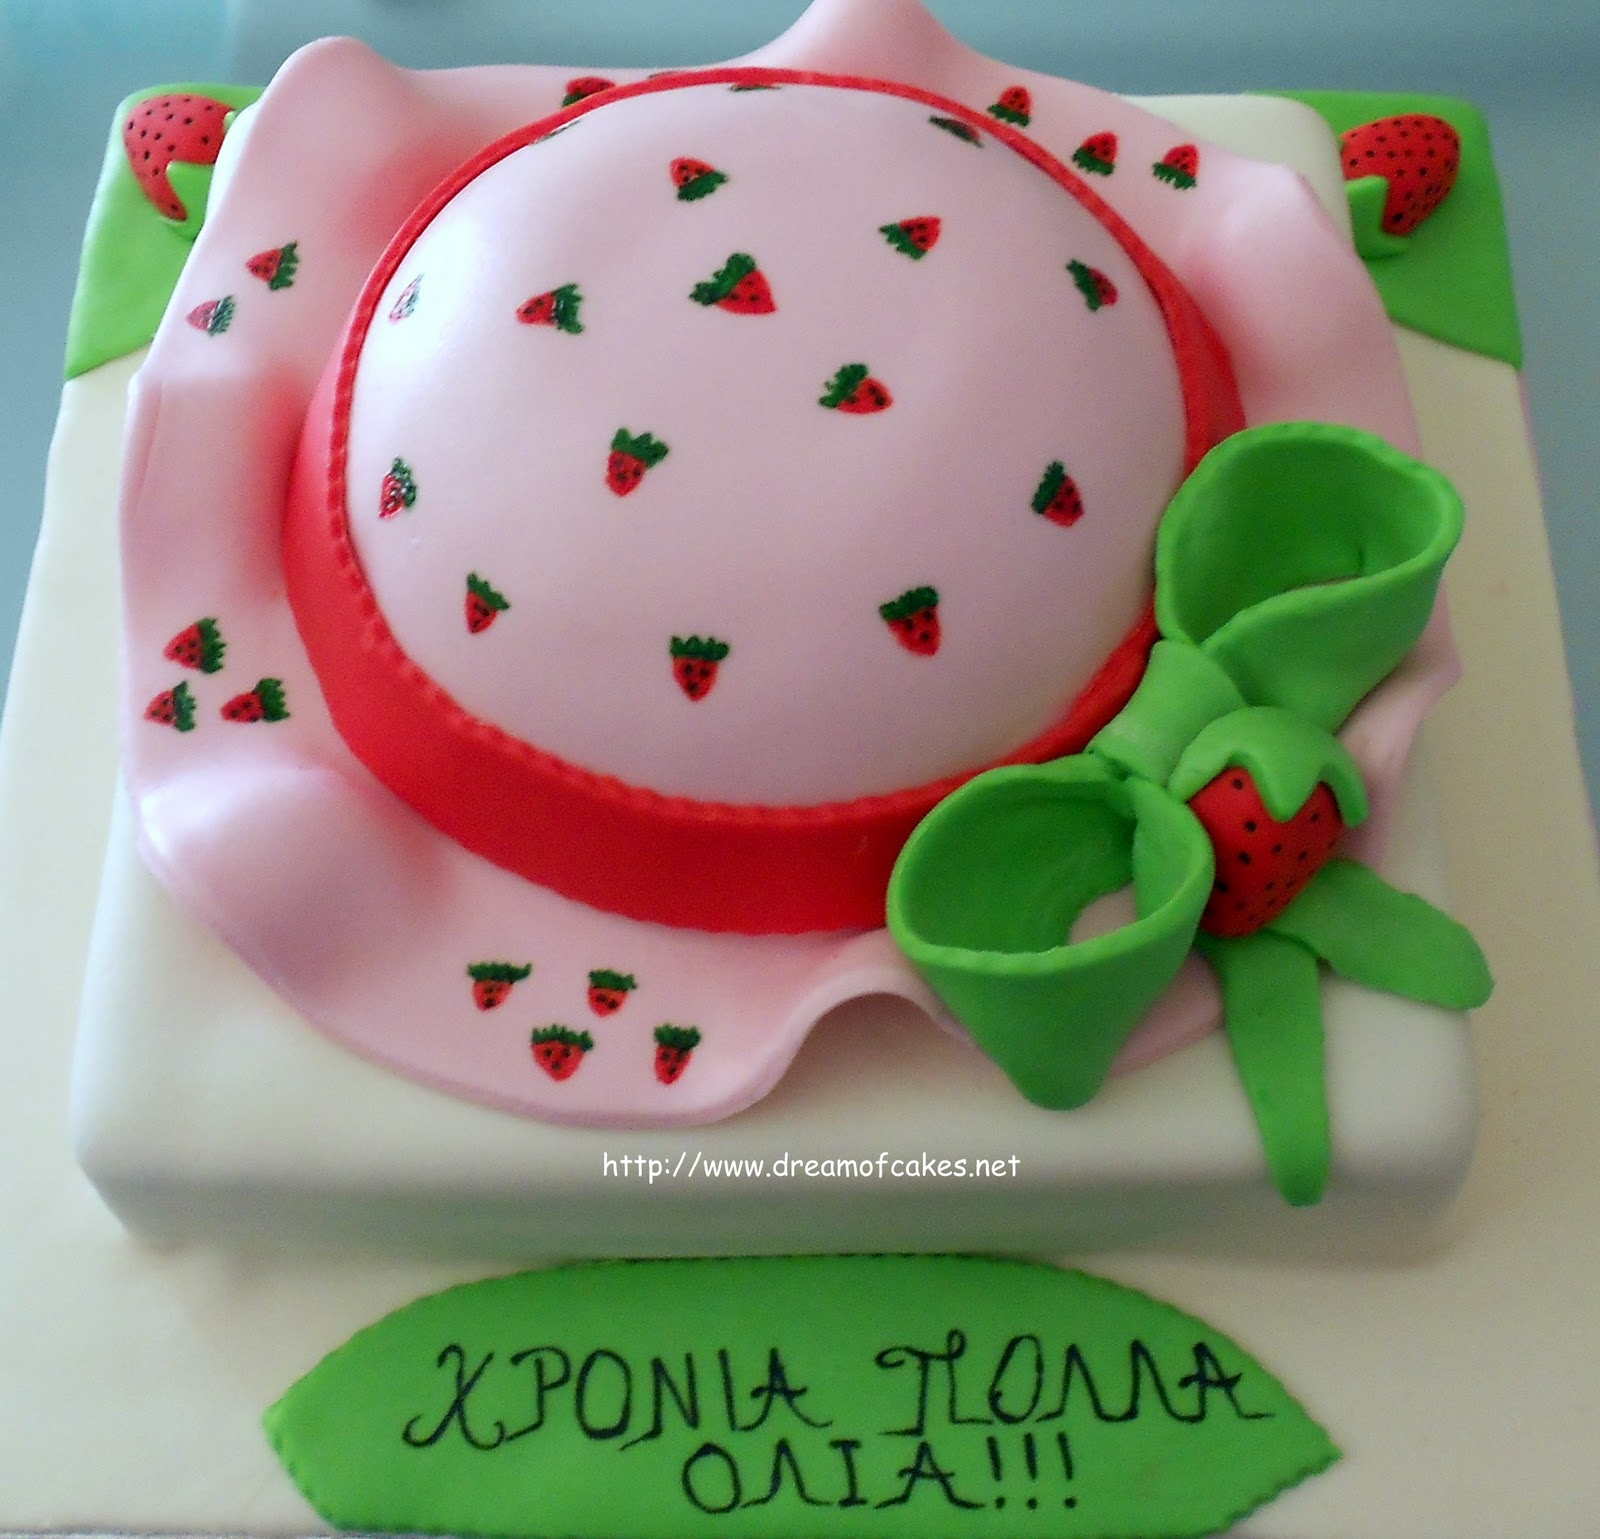 Dream of Cakes: Strawberry Shortcake Cartoon Hat Cake